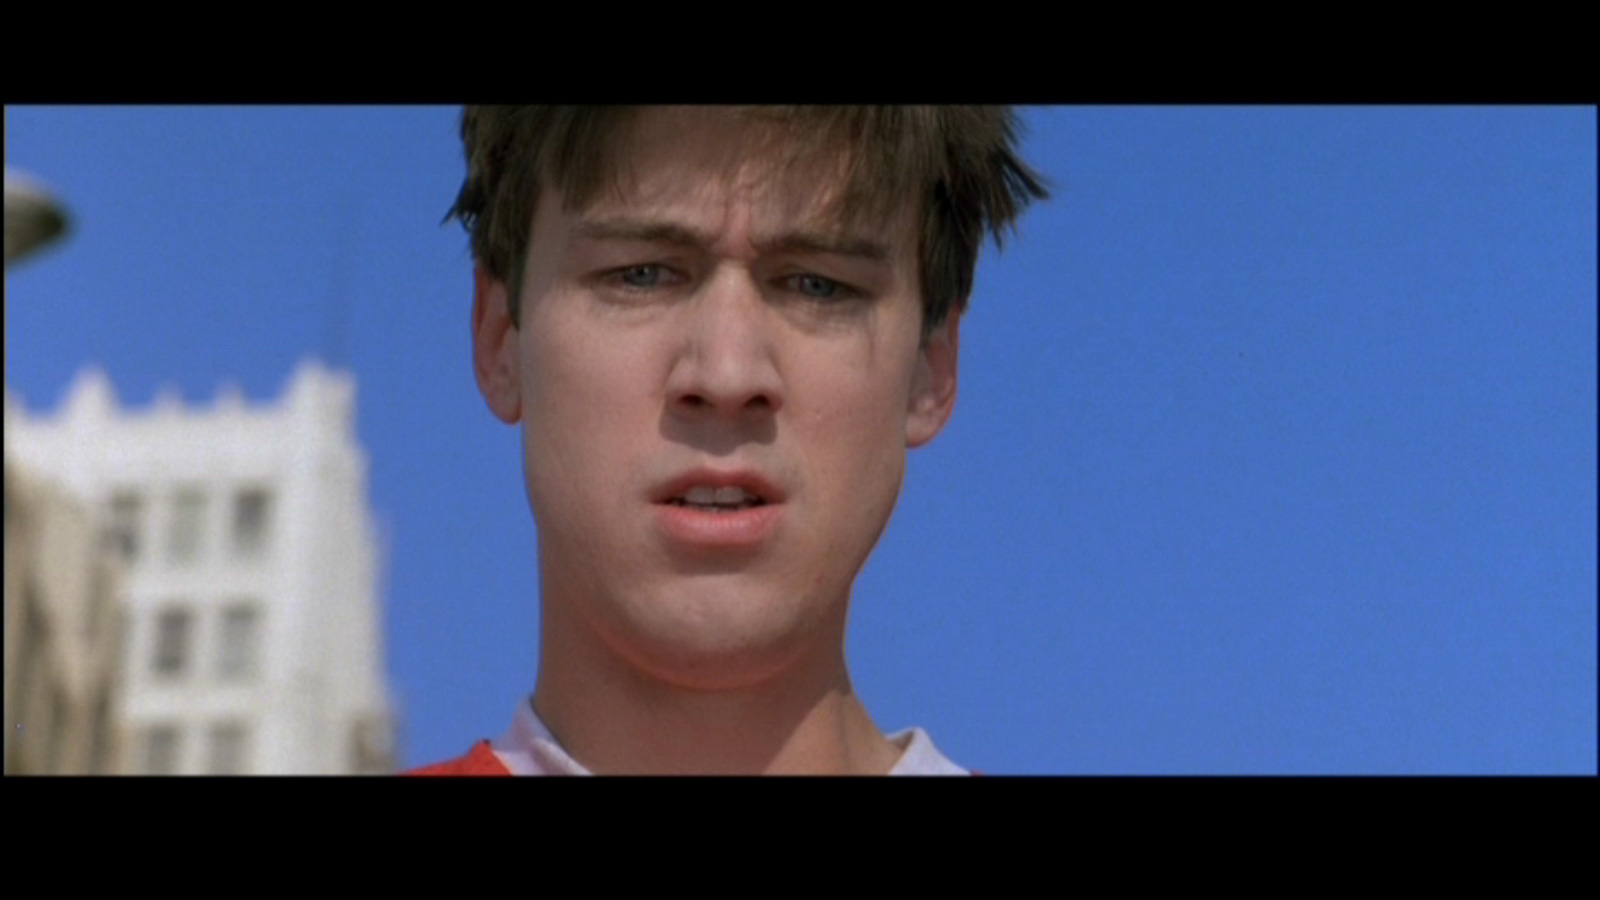 ferris bueller s day off Things in ferris bueller's day off you only notice as an adult  and you realize  that more than a few parts of the movie require a serious suspension of disbelief.